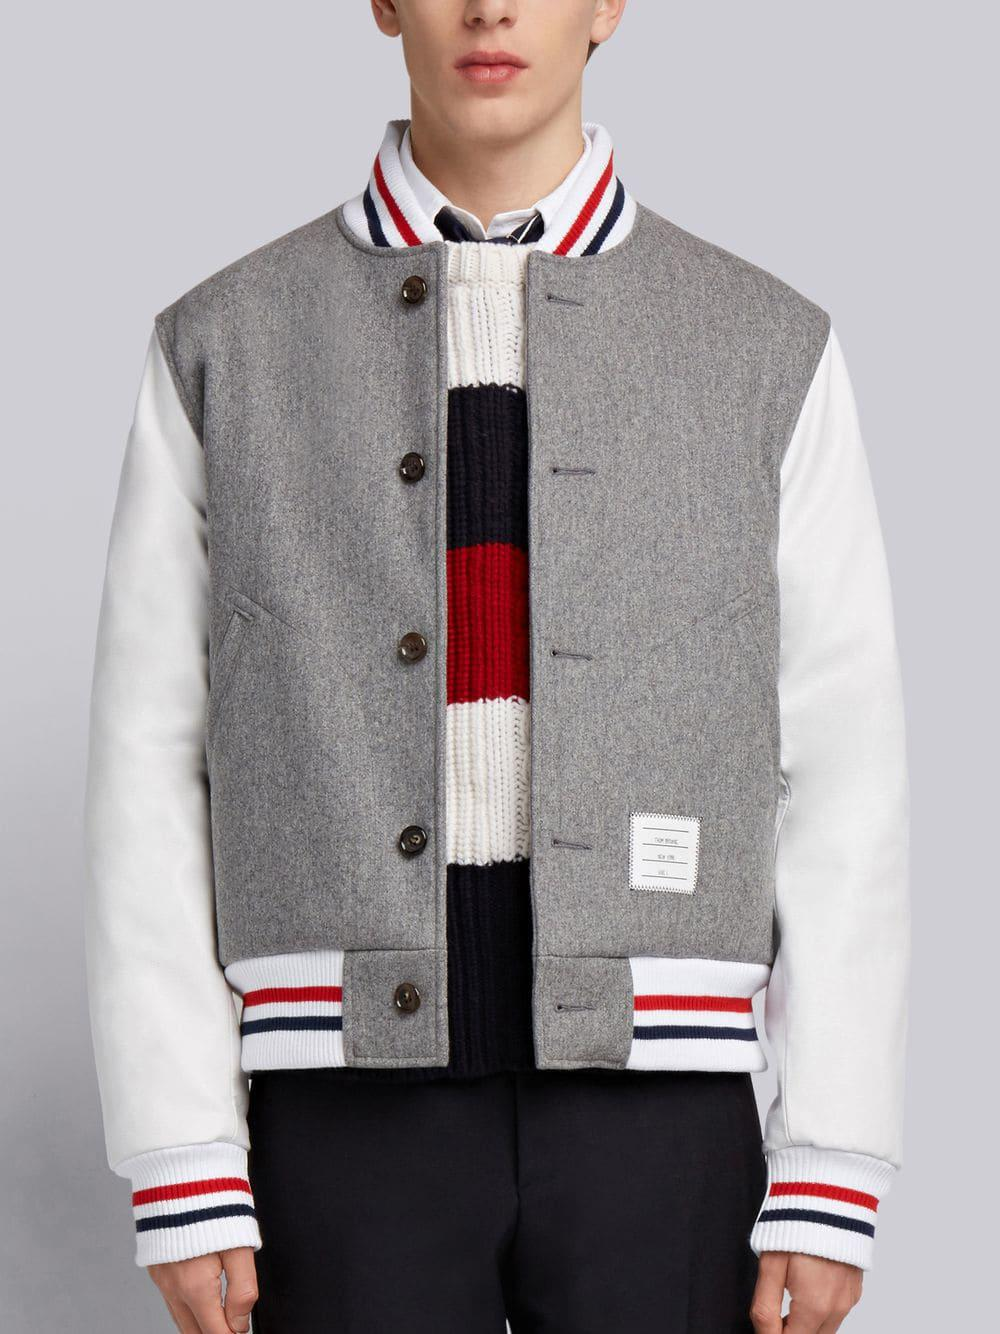 Thom Browne Button Front Melton Wool Varsity Jacket - Grey